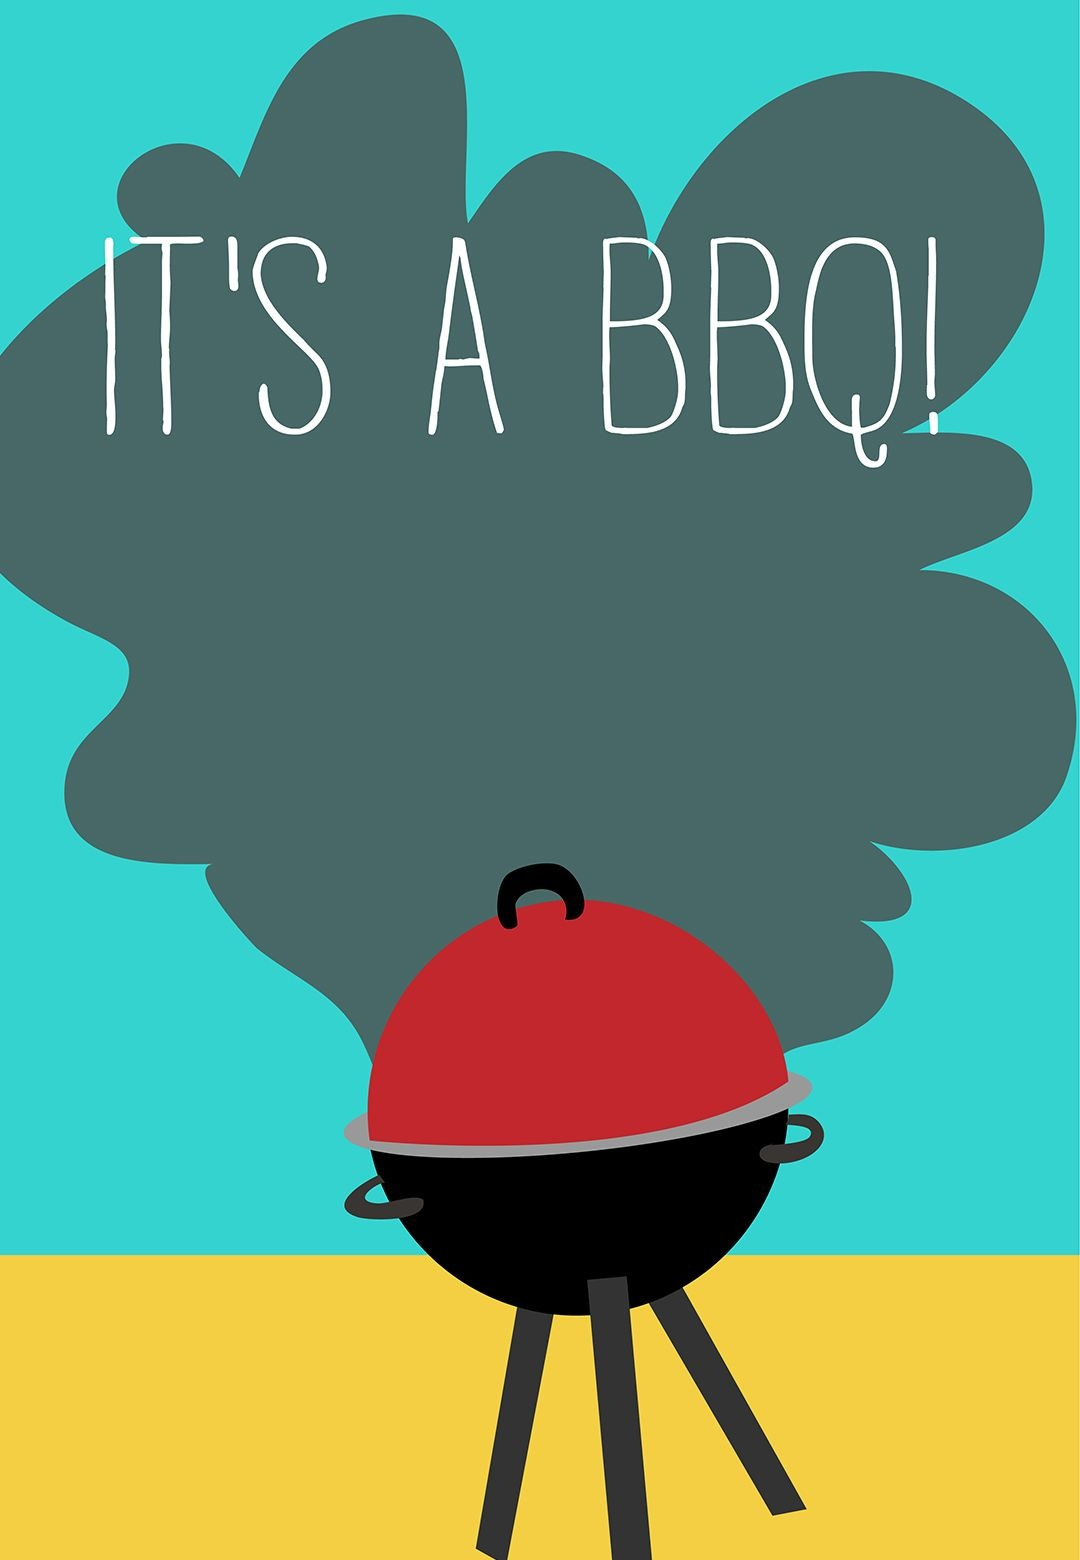 4Th Of July Bbq Party Invitation - Free Printable | Summer Grillin - Free Printable Cookout Invitations